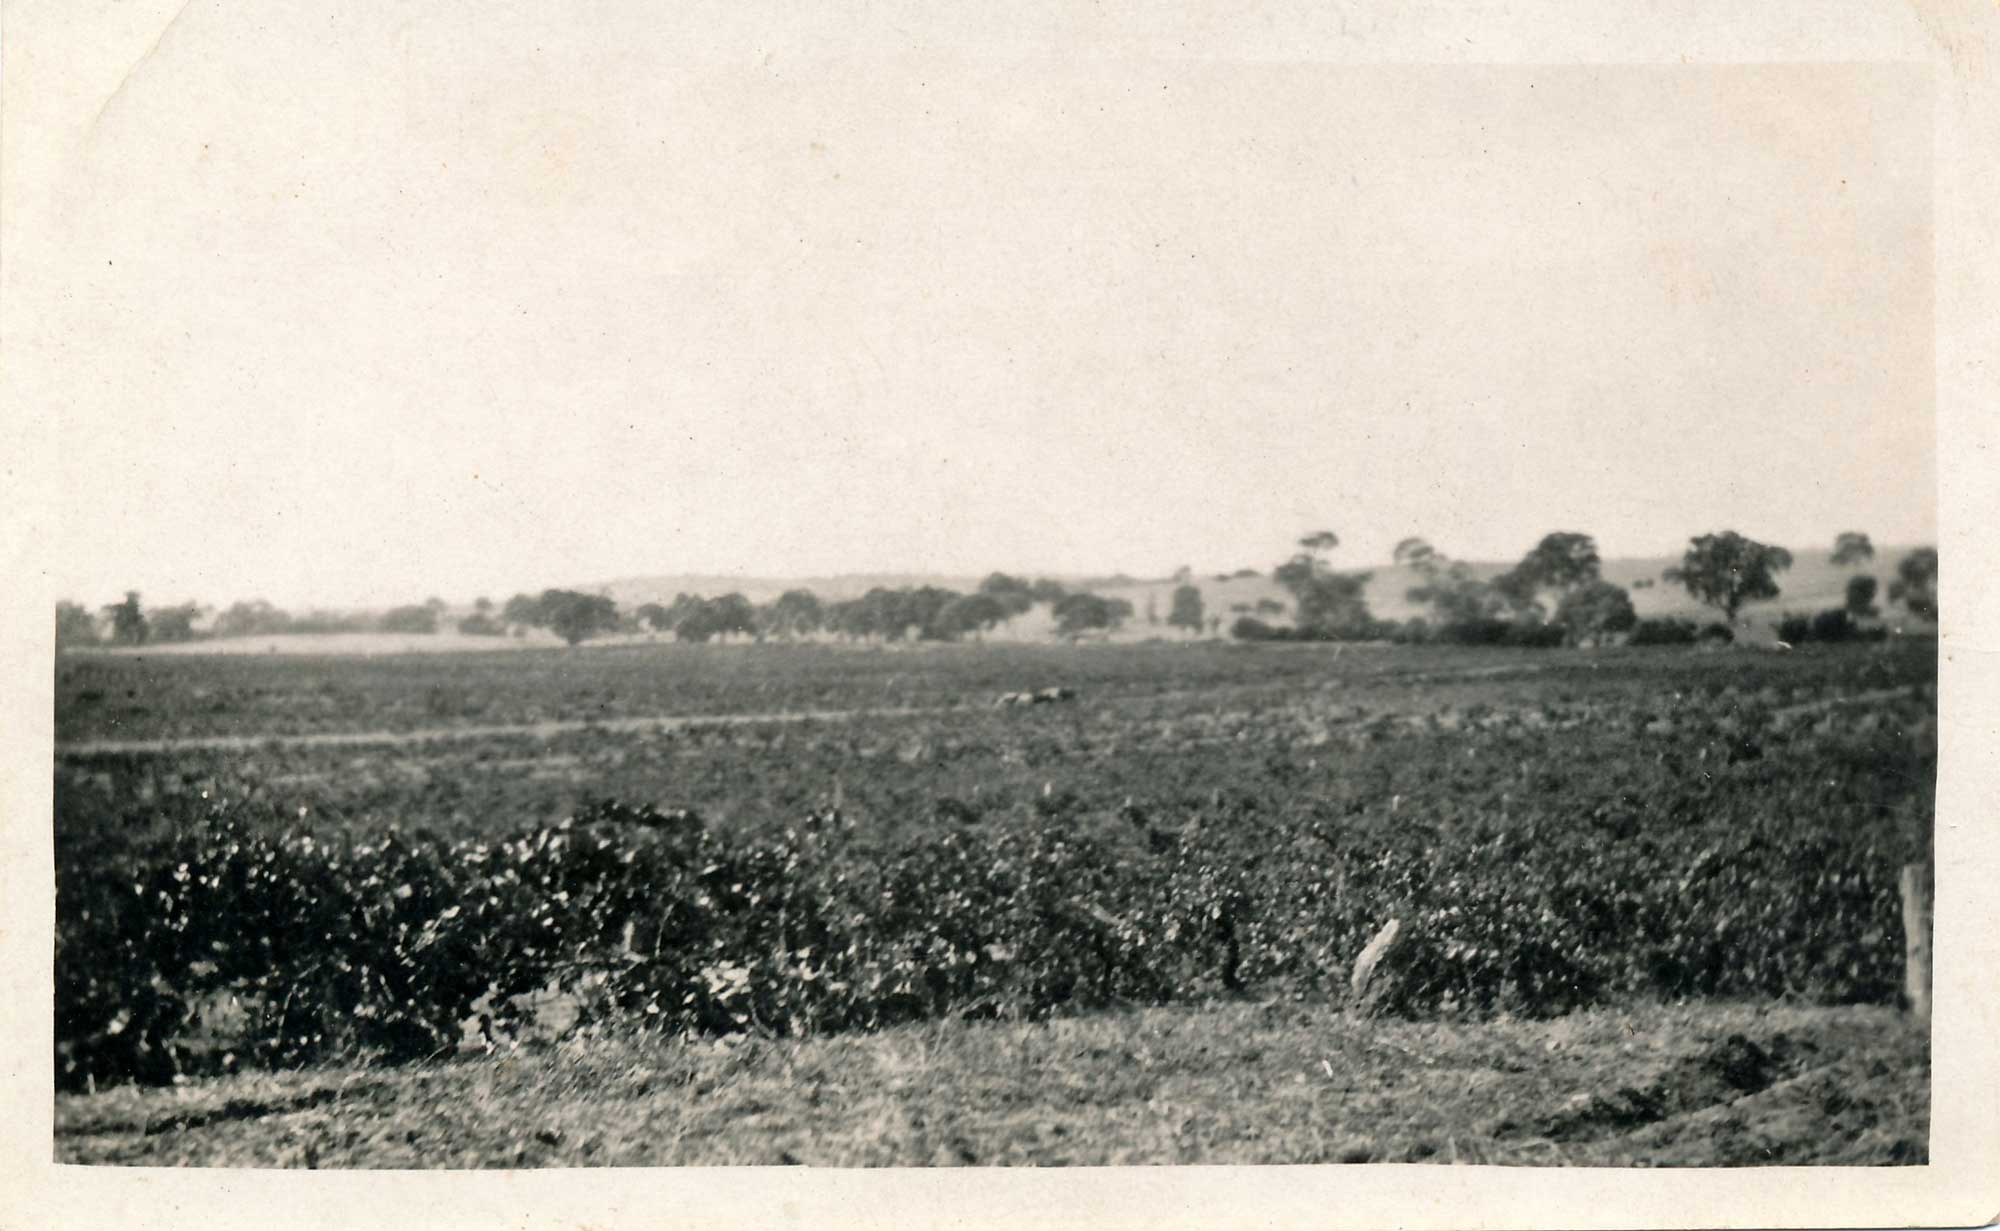 Stonegarden vineyards c1870s